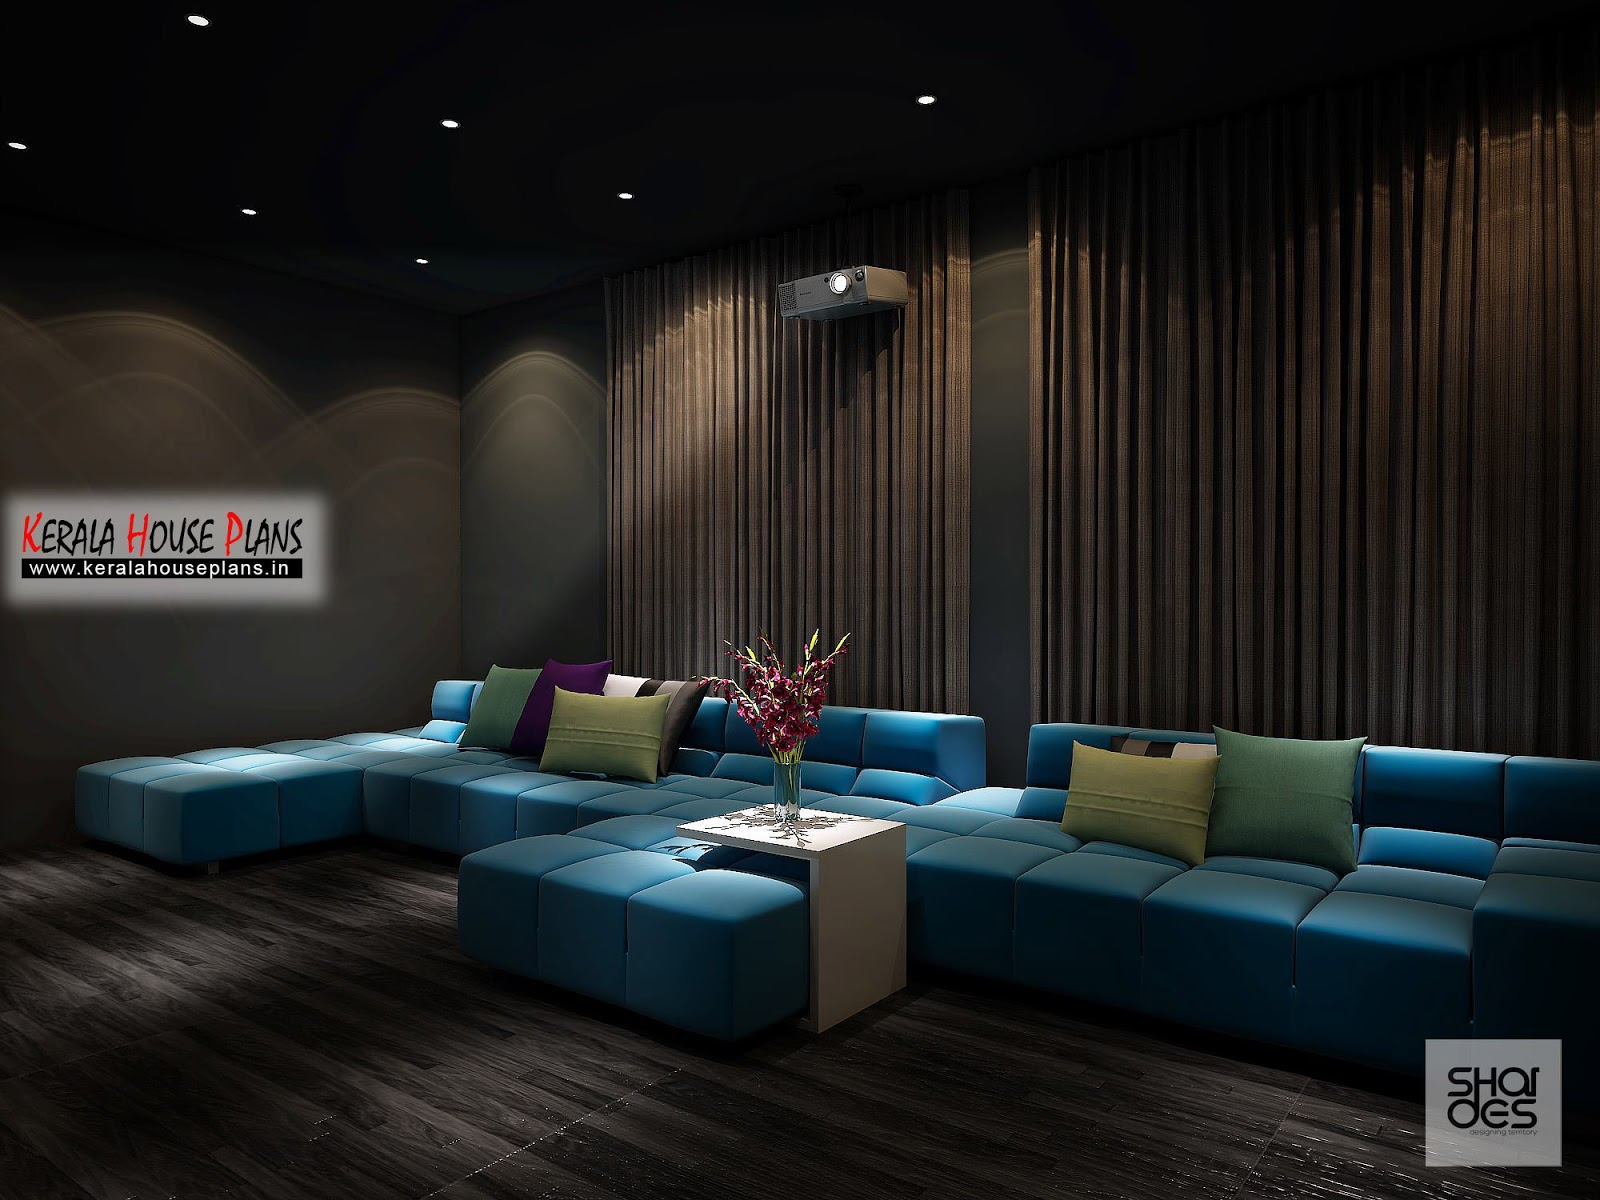 Home theater interior design idea and concept kerala house plans designs floor plans and Interior design ideas home theater